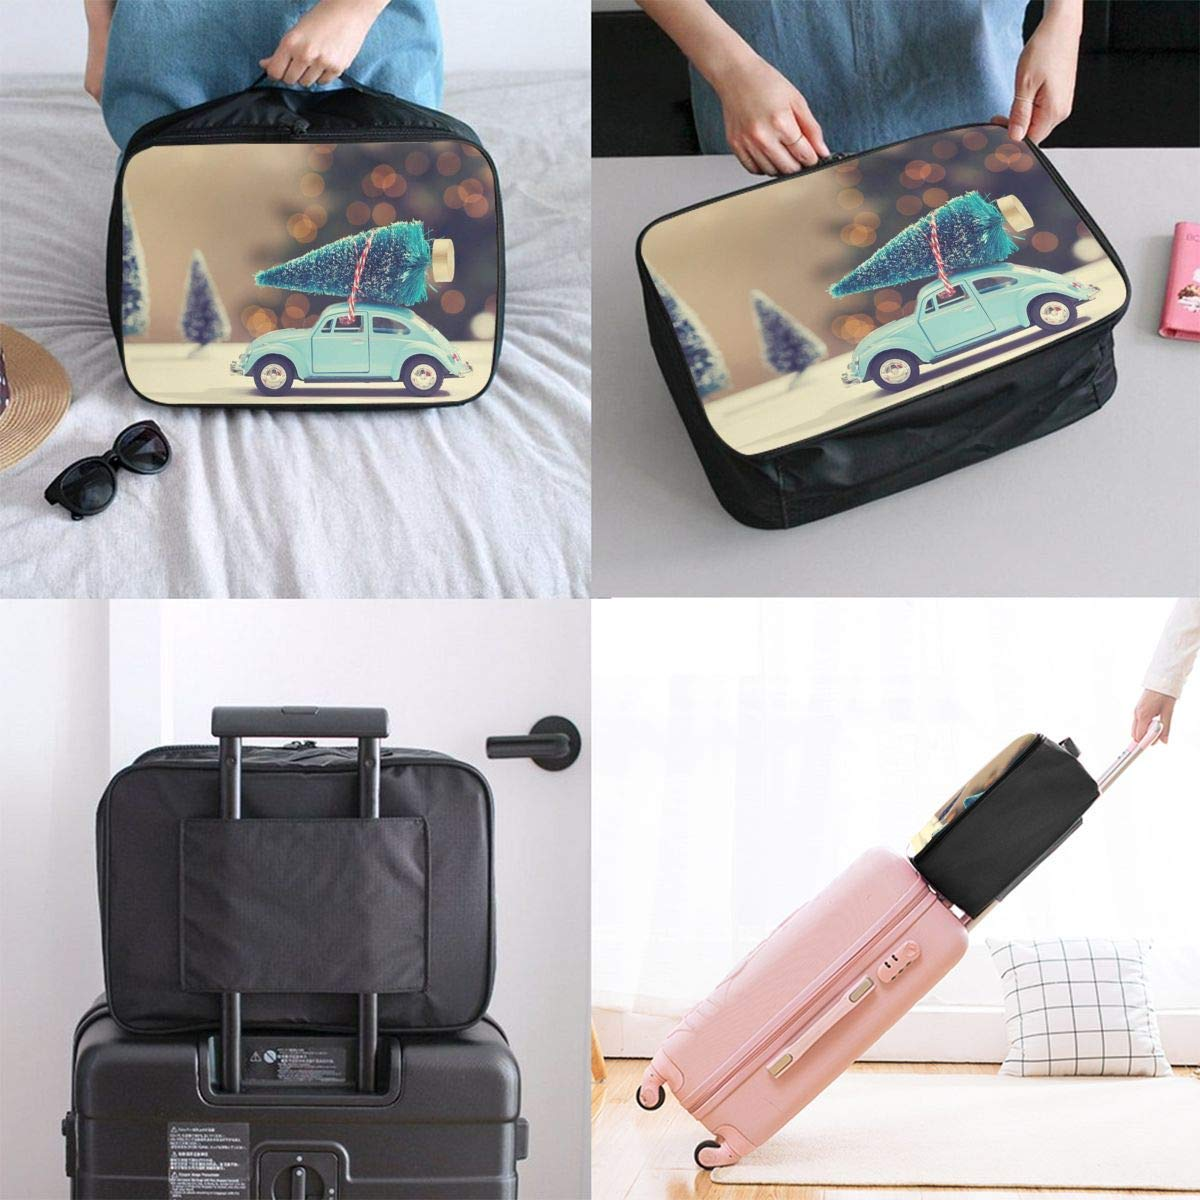 JTRVW Luggage Bags for Travel Lightweight Large Capacity Portable Duffel Bag for Men /& Women Cartoon Car And Tree Travel Duffel Bag Backpack